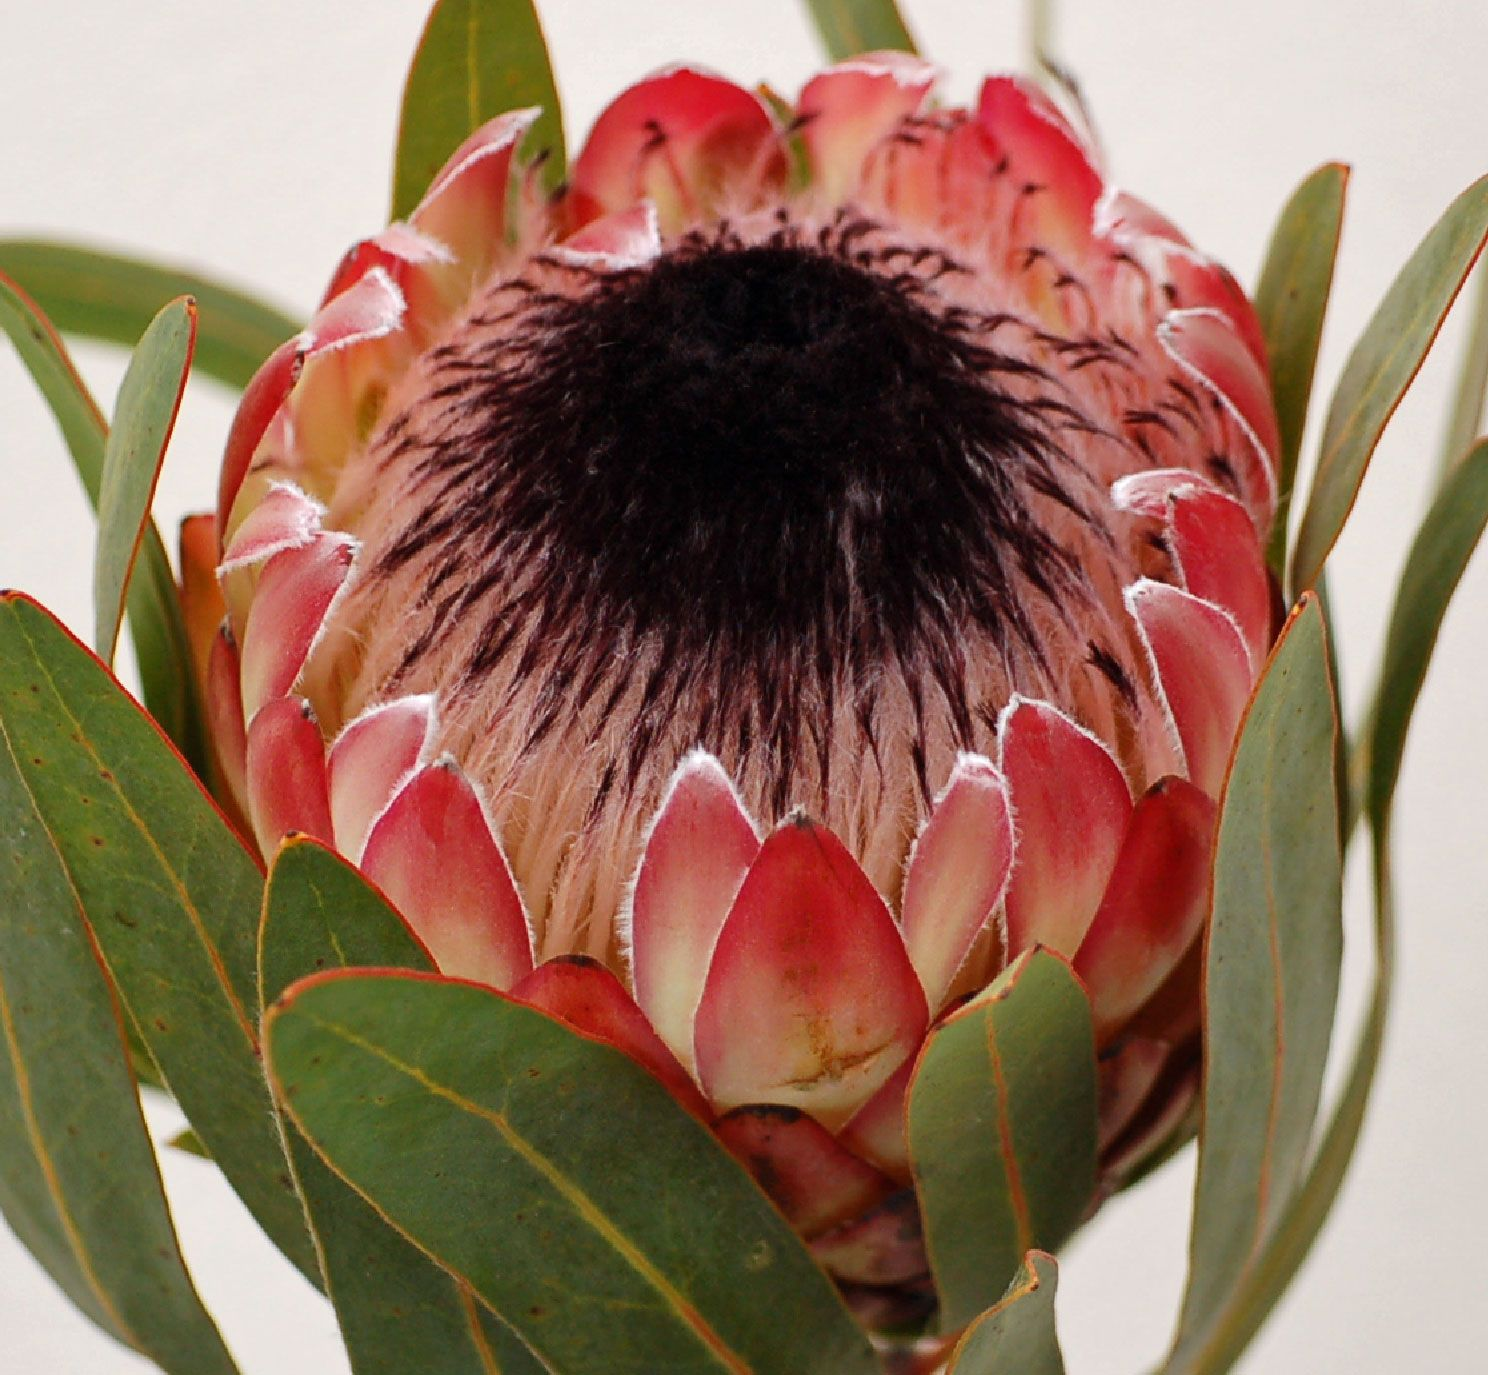 Pinita Cagrown Americangrown Protea Flower Flower Photography Art Australian Flowers